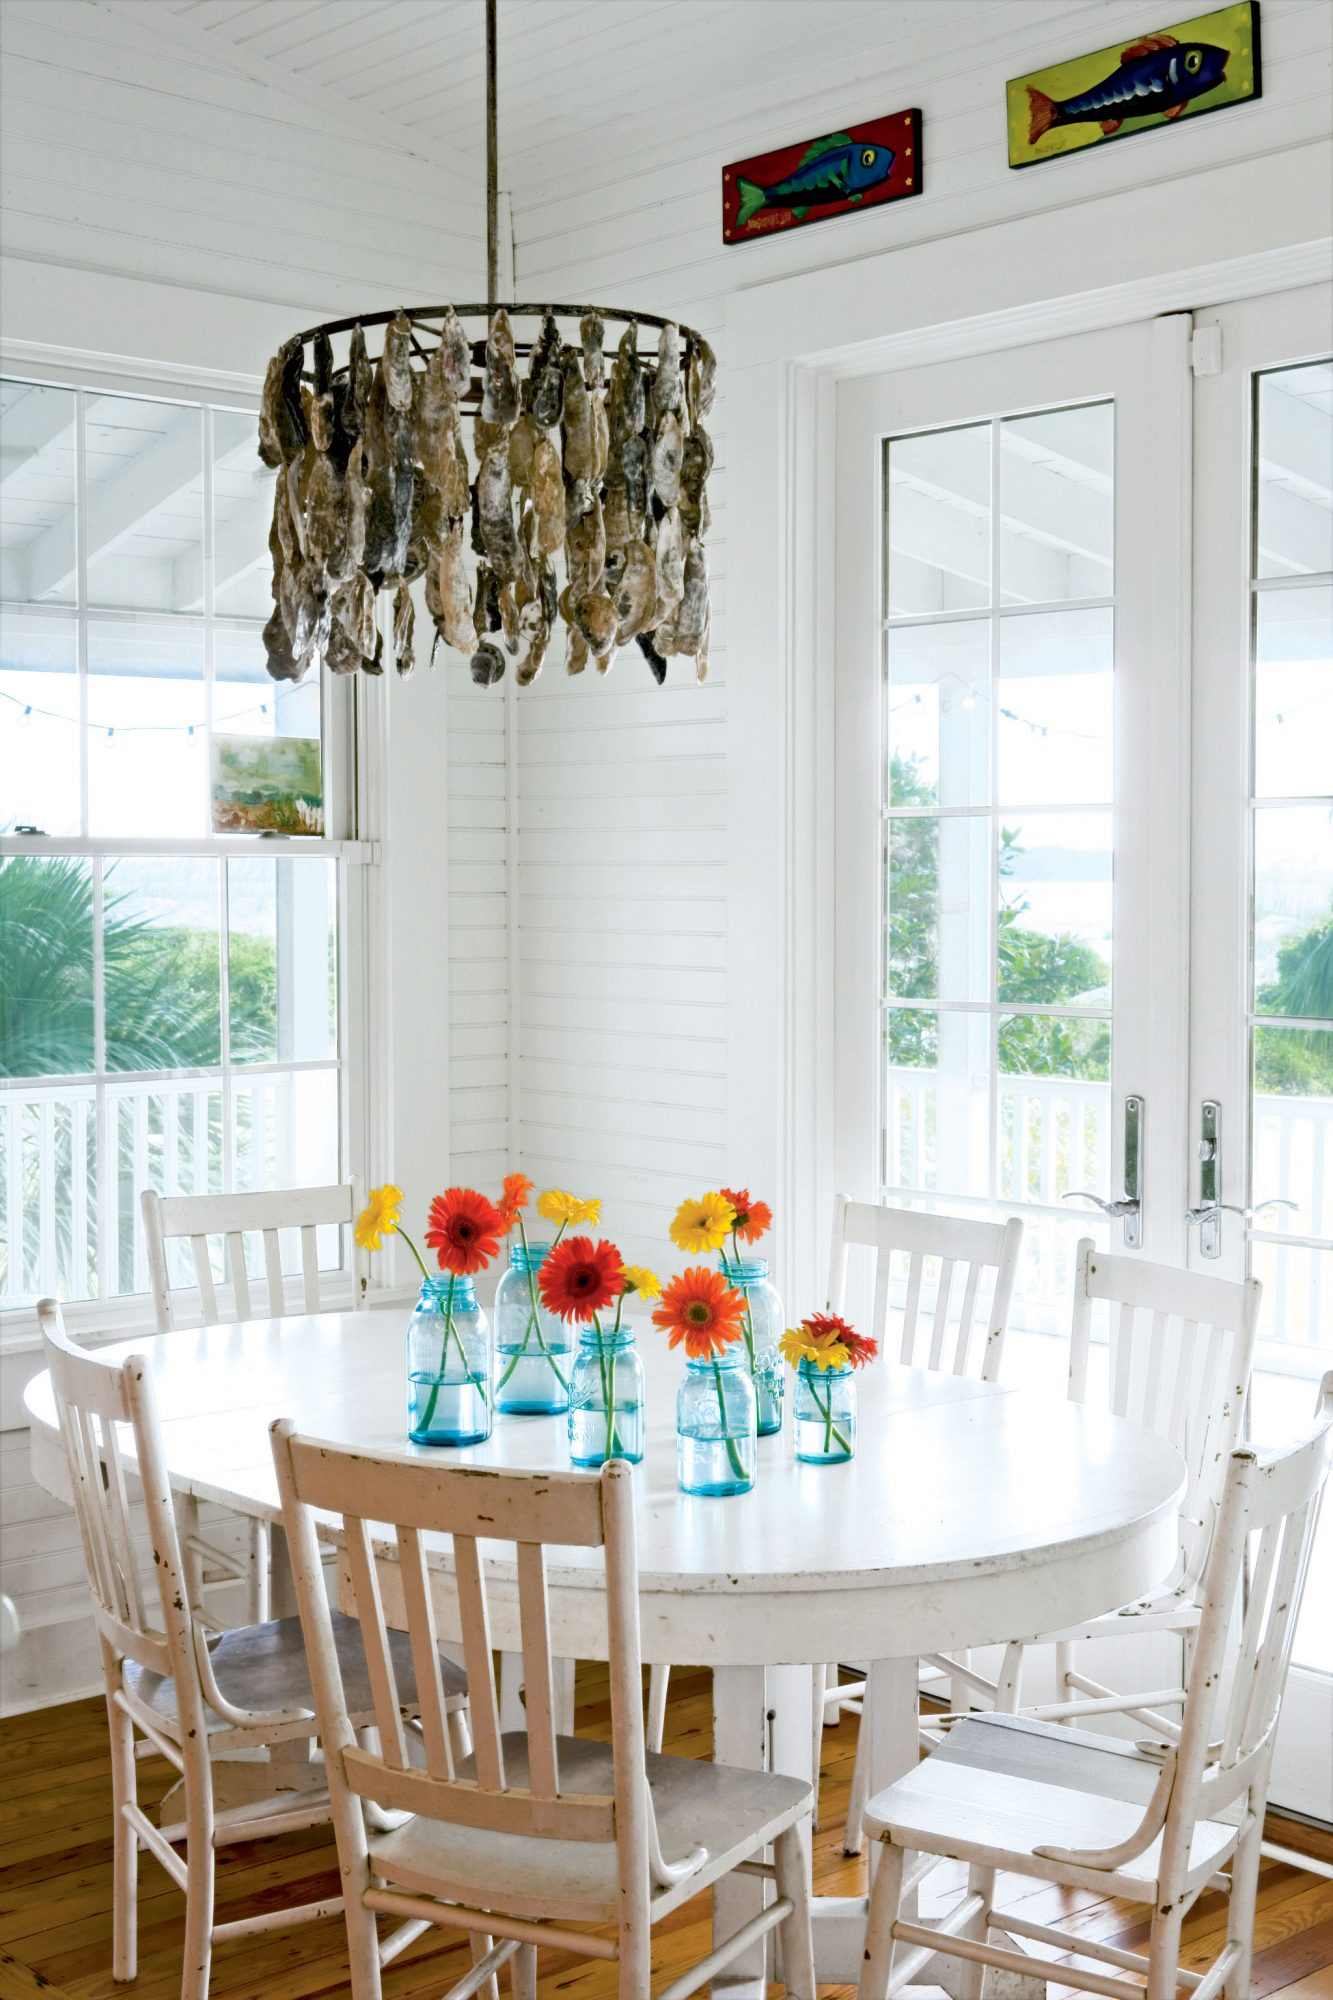 Leave the color to the landscape having a primarily white interior. The funky oyster-shell chandelier has the right amount of attitude to make sure this dining room doesn't look washed out.